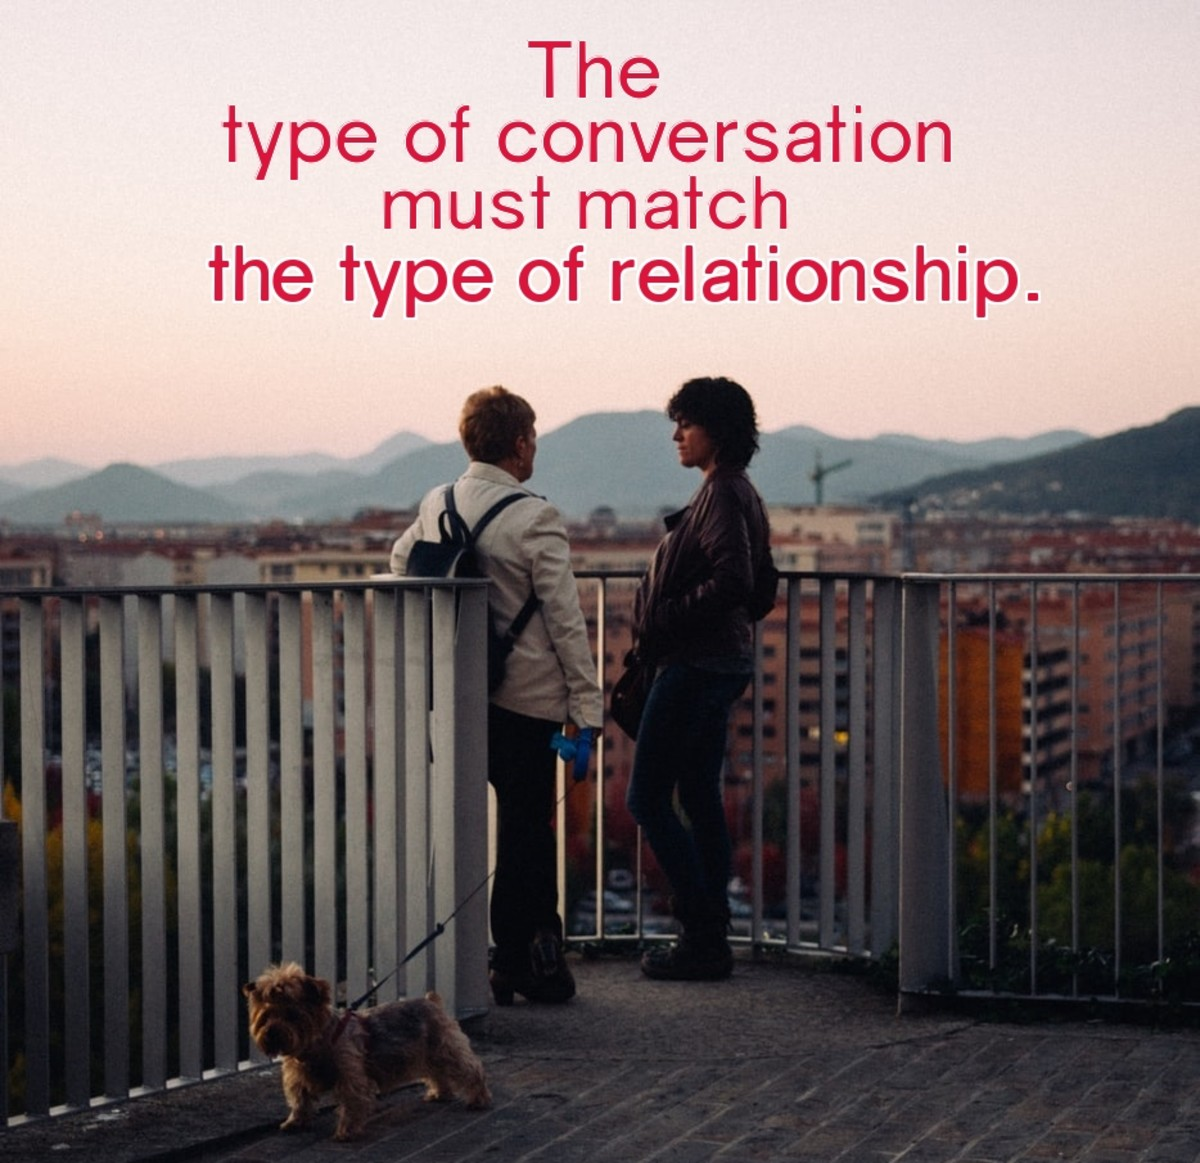 Conversation Types in Healthy Relationships